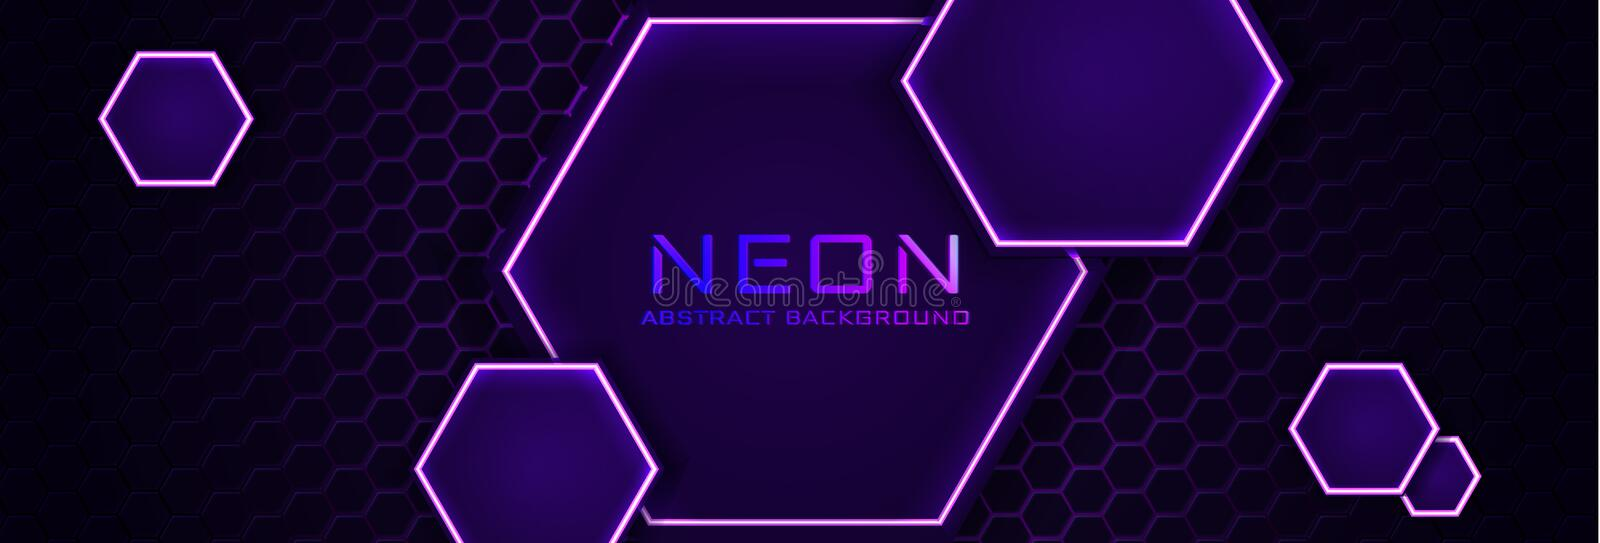 Abstract neon infographic background with violet light, line and texture. Vector banner design in dark night colour vector illustration